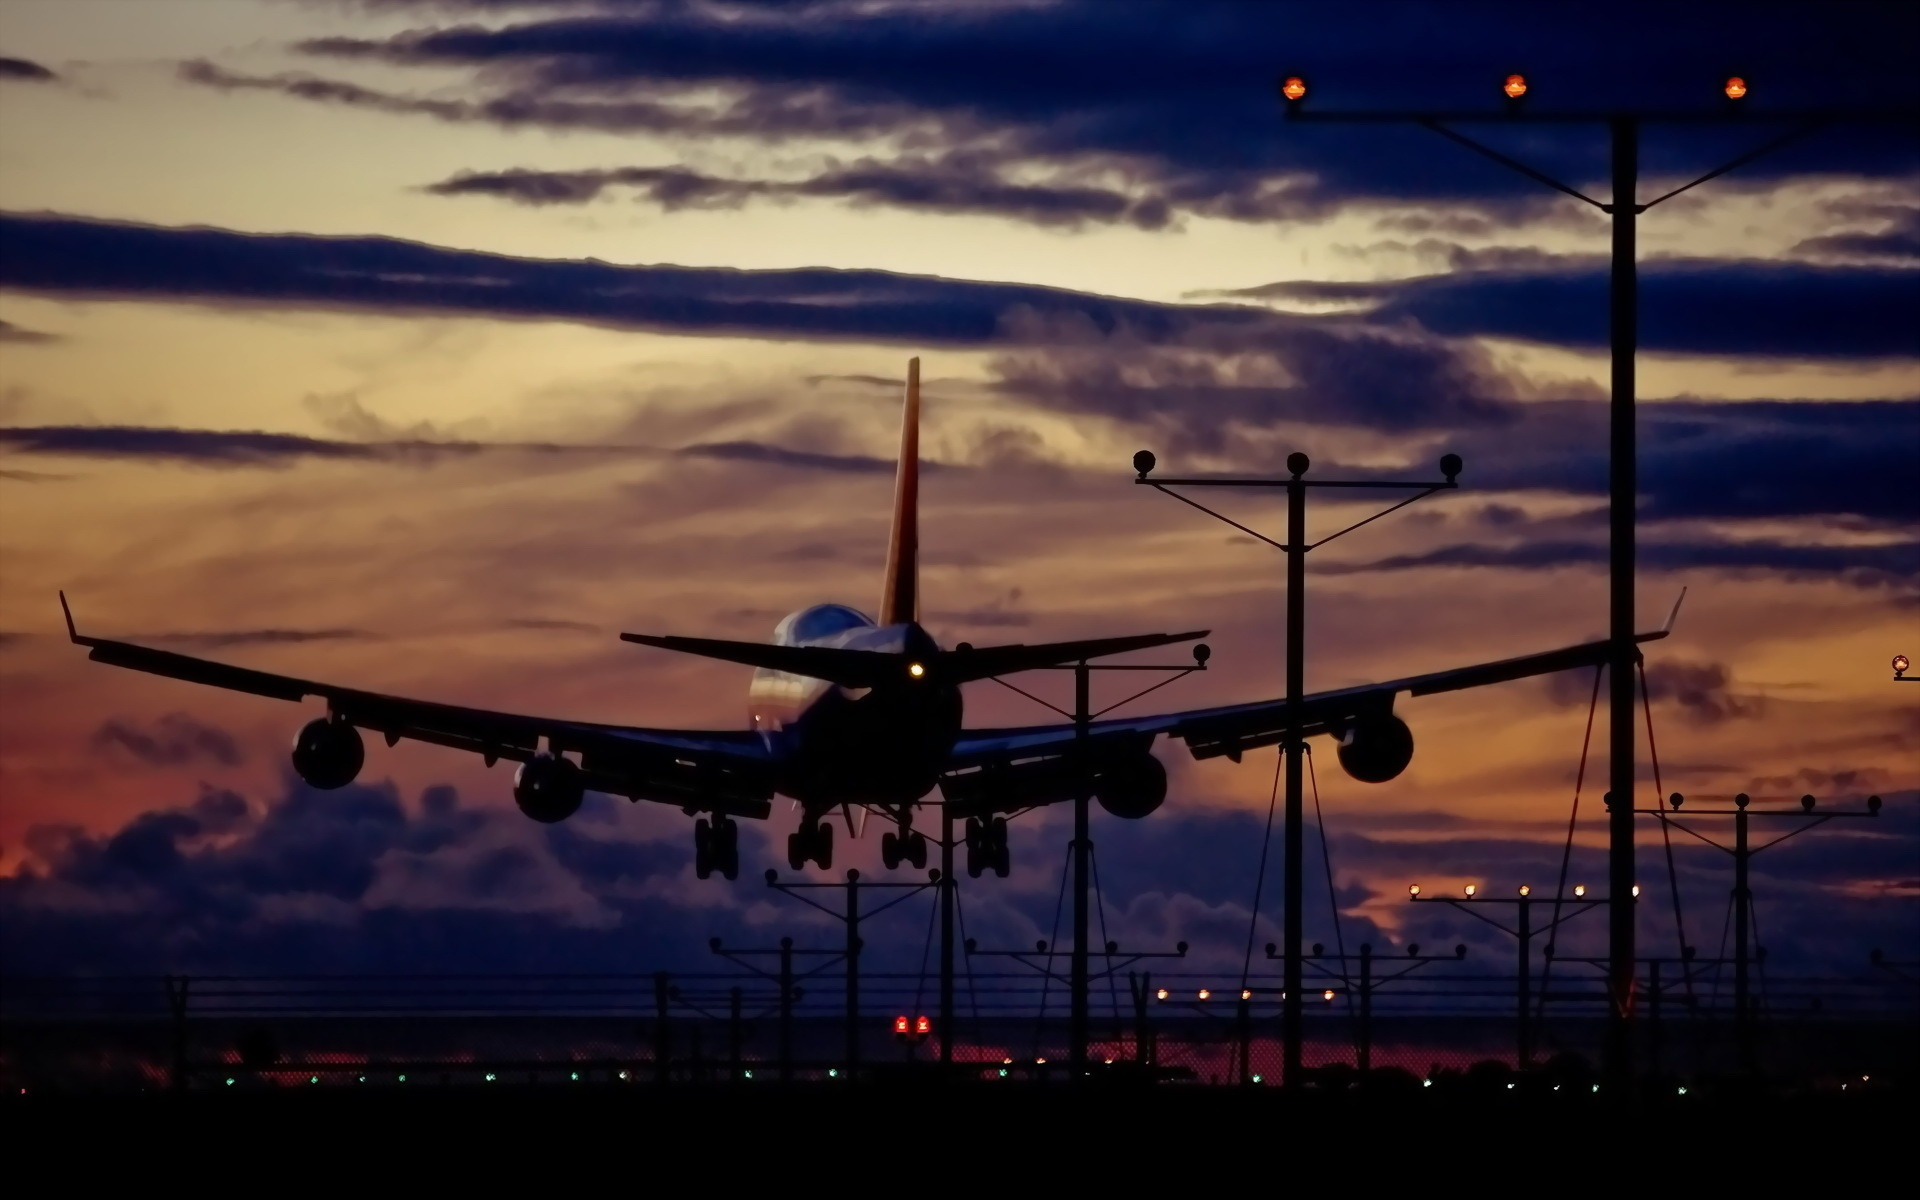 Free Airport Wallpaper 33947 1920x1200 px